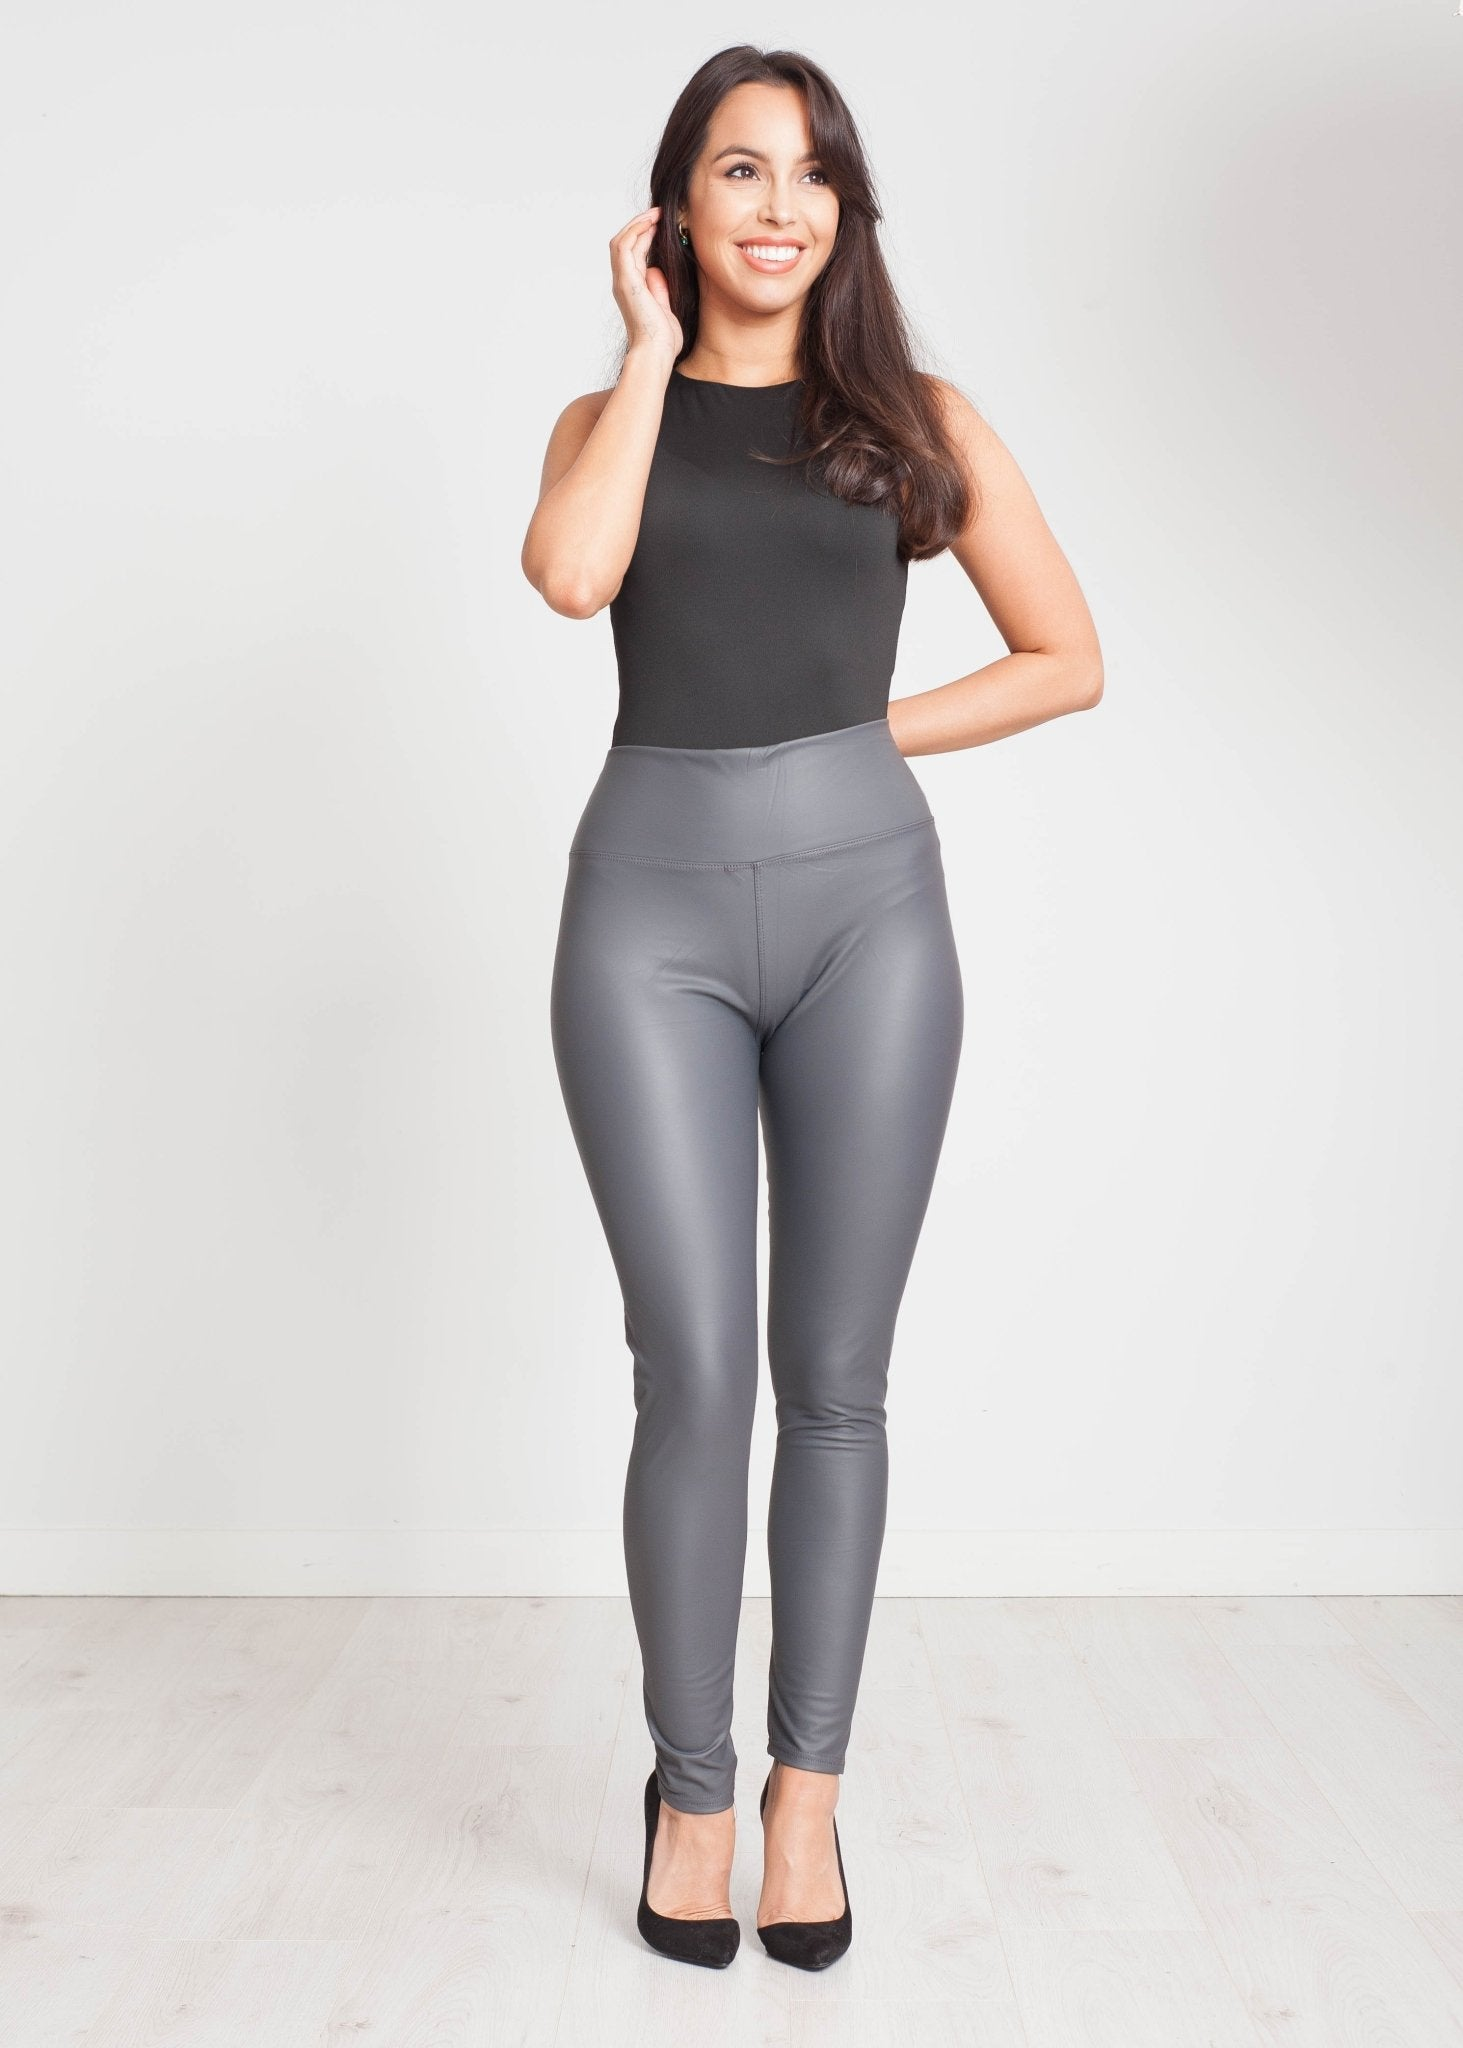 Alice Leather Look Legging In Grey - The Walk in Wardrobe